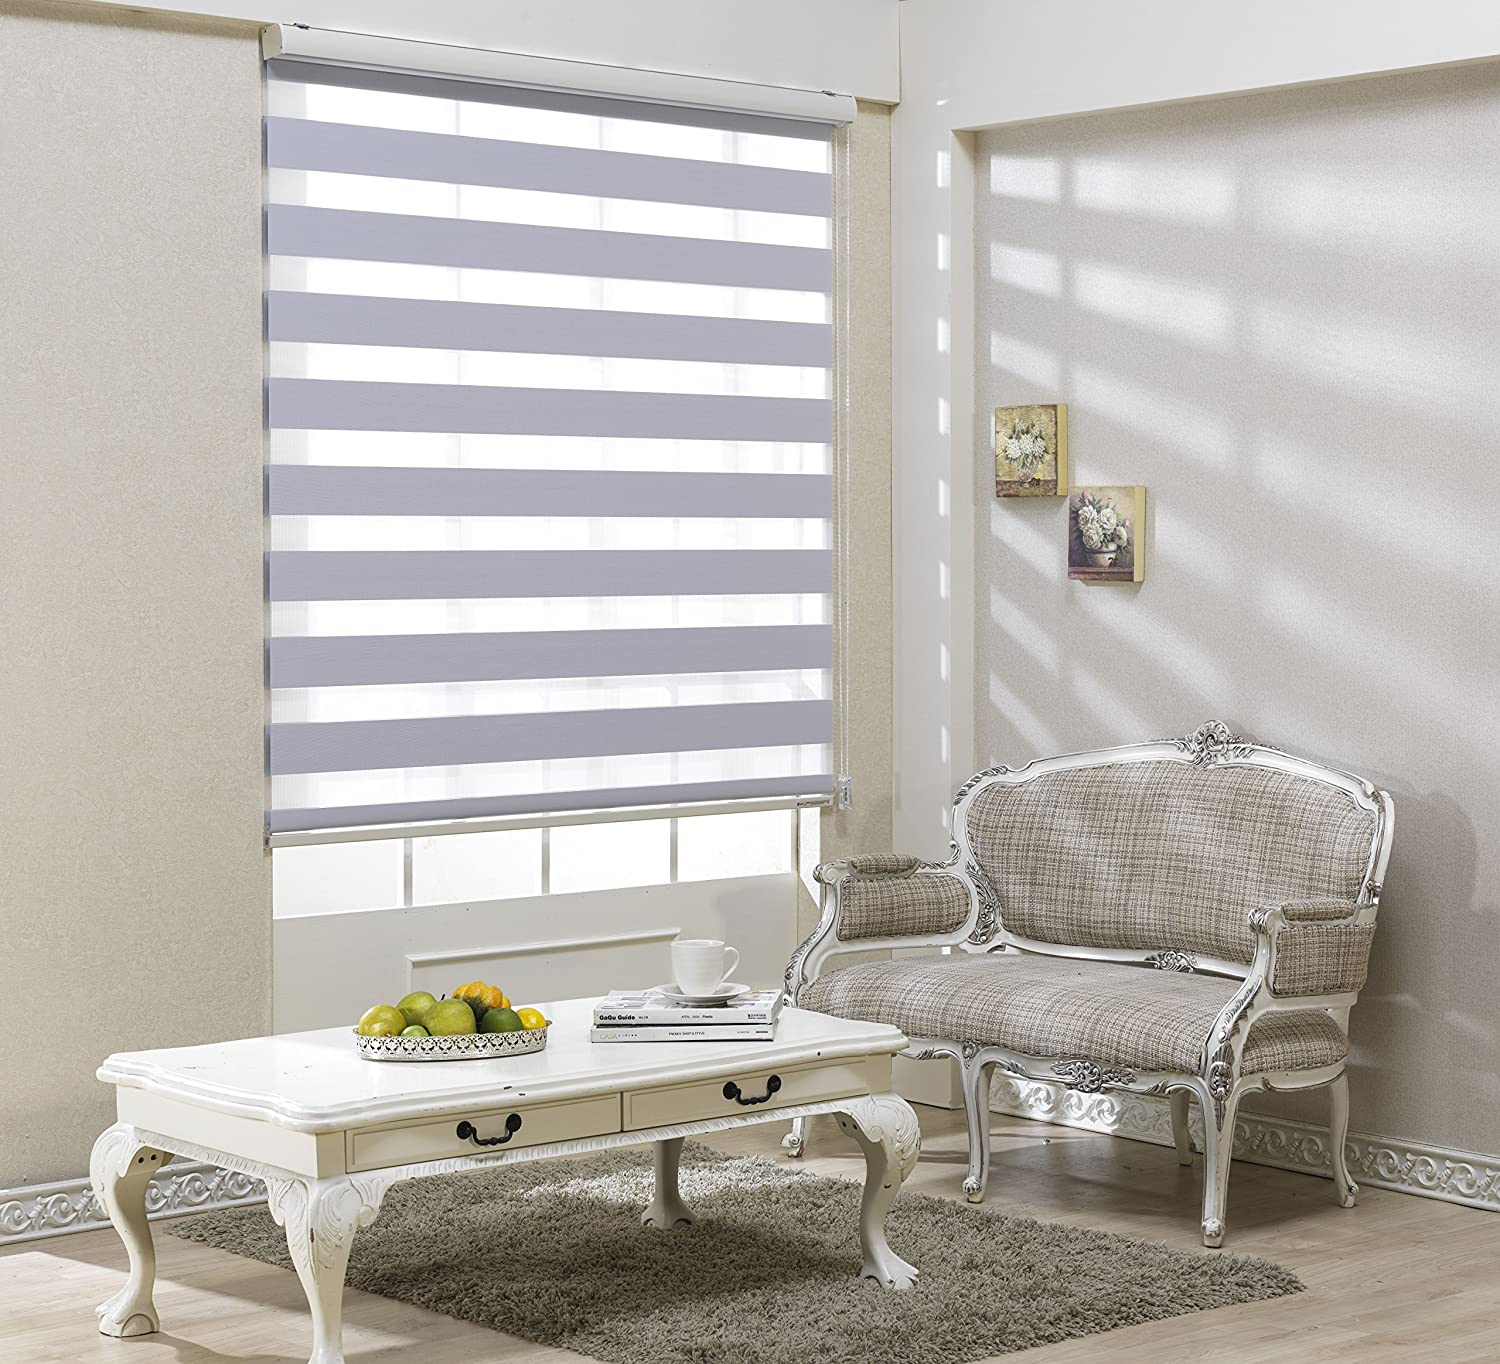 Custom Cut to Size, [Winsharp Blackout Jasmine, White, W 91 x H 82 inch] Zebra Roller Blinds, Dual Layer Shades, Sheer or Privacy Light Control, Day and Night Window Drapes, 20 to 110 inch wide